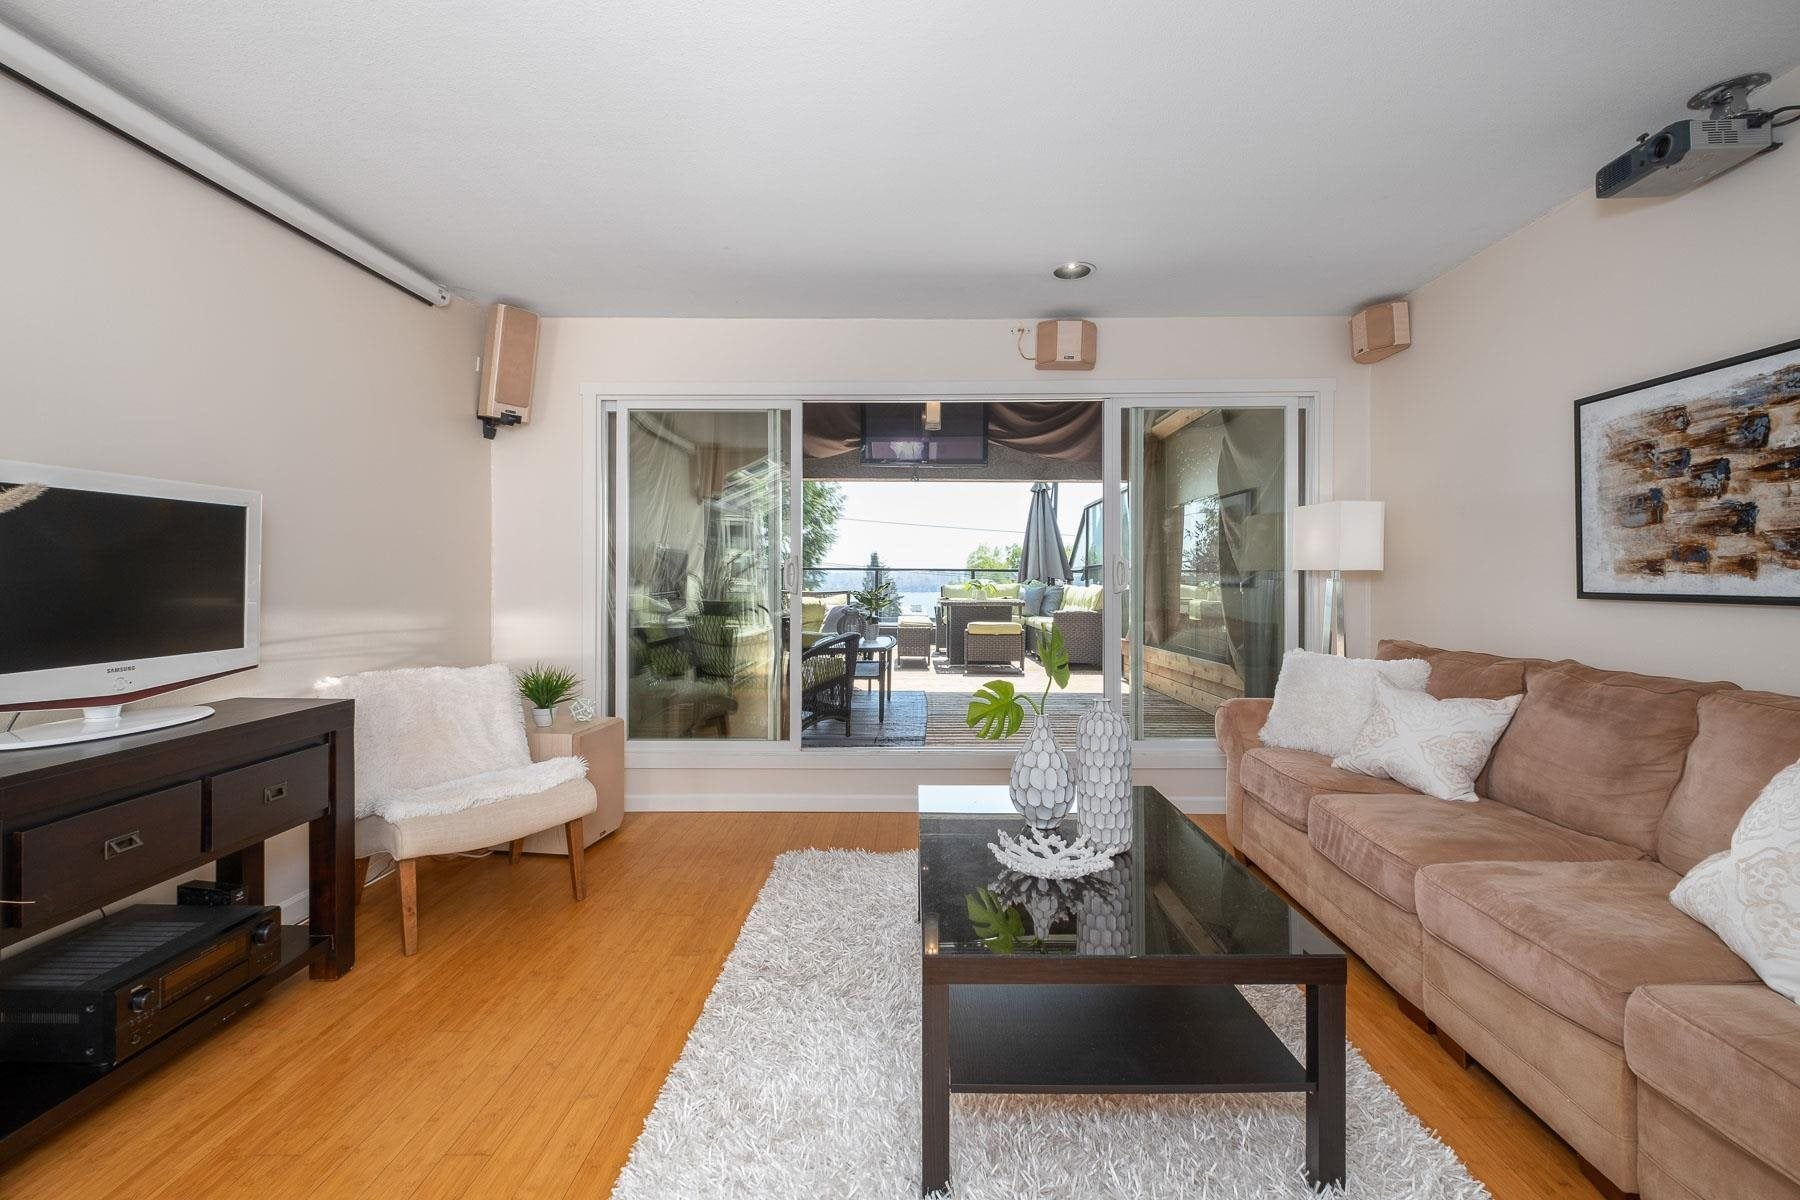 C 258 E 3RD STREET - Lower Lonsdale Townhouse for sale, 3 Bedrooms (R2602606)